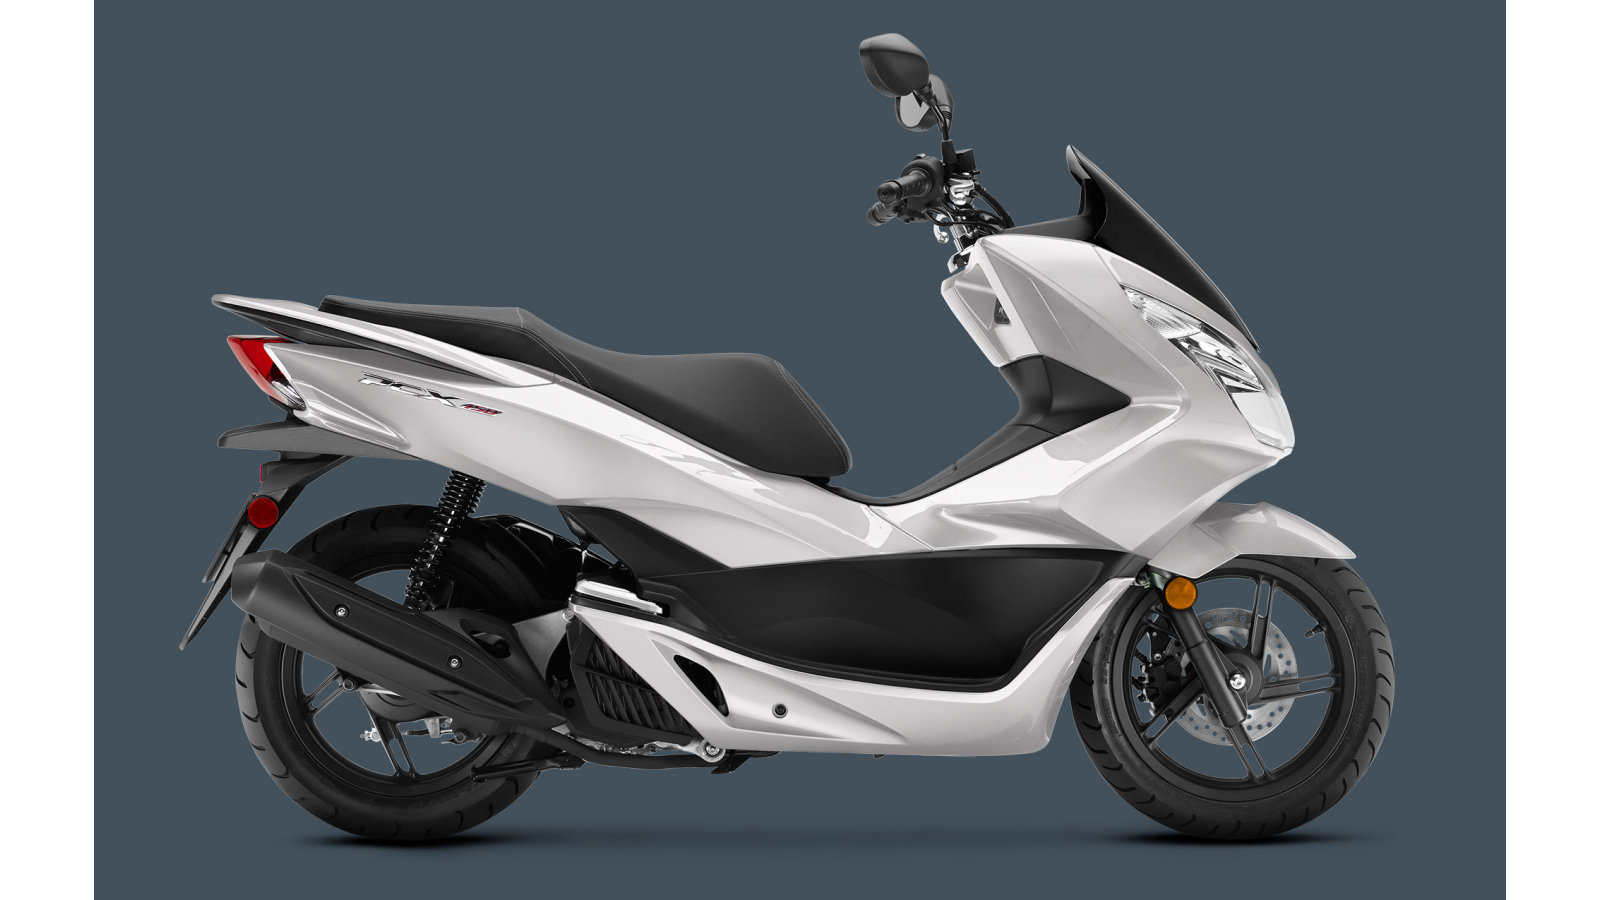 2015 2017 honda pcx150 picture 685085 motorcycle. Black Bedroom Furniture Sets. Home Design Ideas